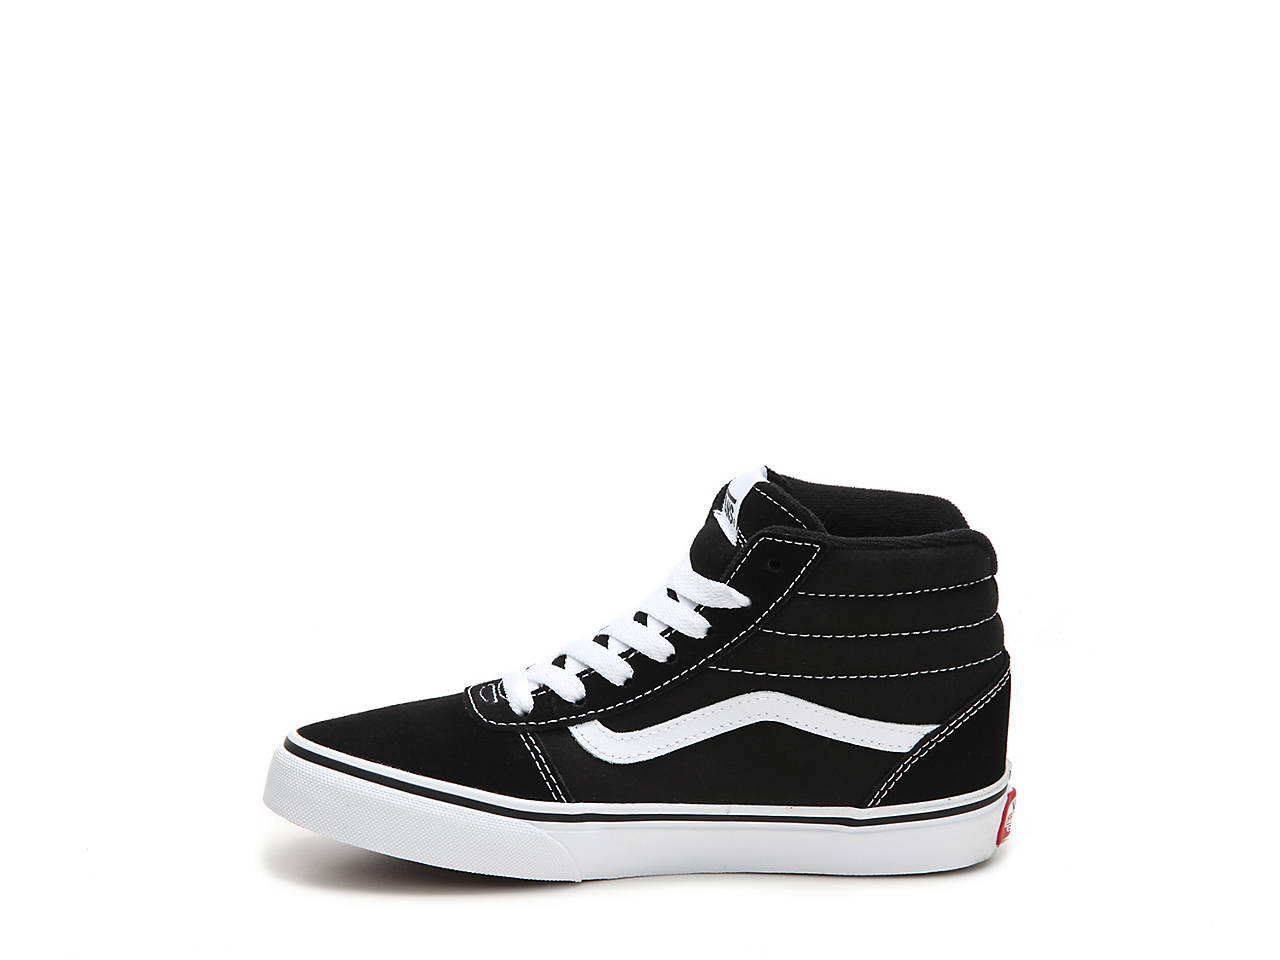 11e5e70ee0cdee Vans Ward Toddler   Youth High-Top Sneaker Kids Shoes